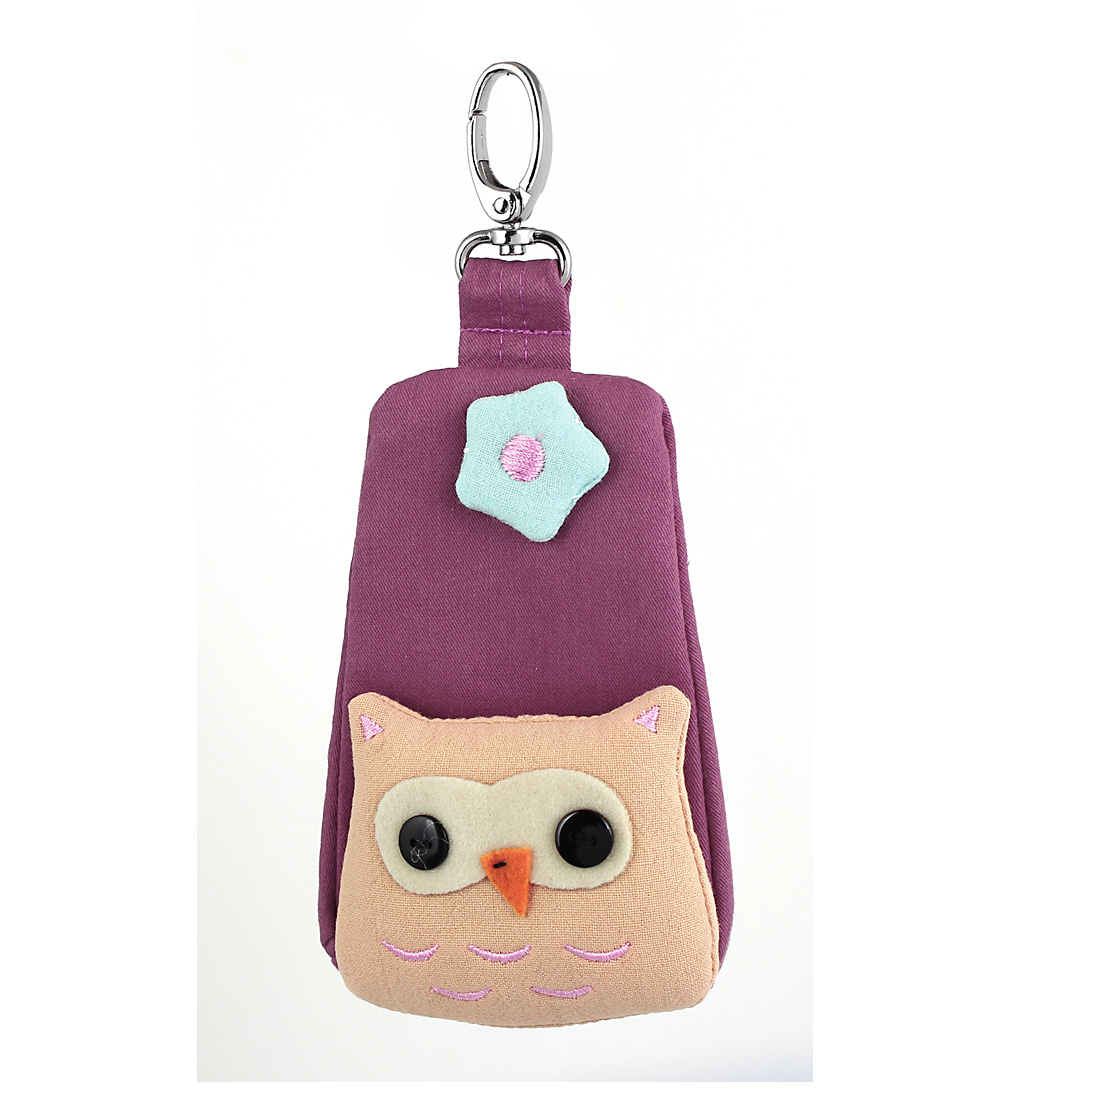 Lobster Clasp Zip Up Cloth Owl Head Decor Key Coin Bag Purse Wallet Pouch Purple